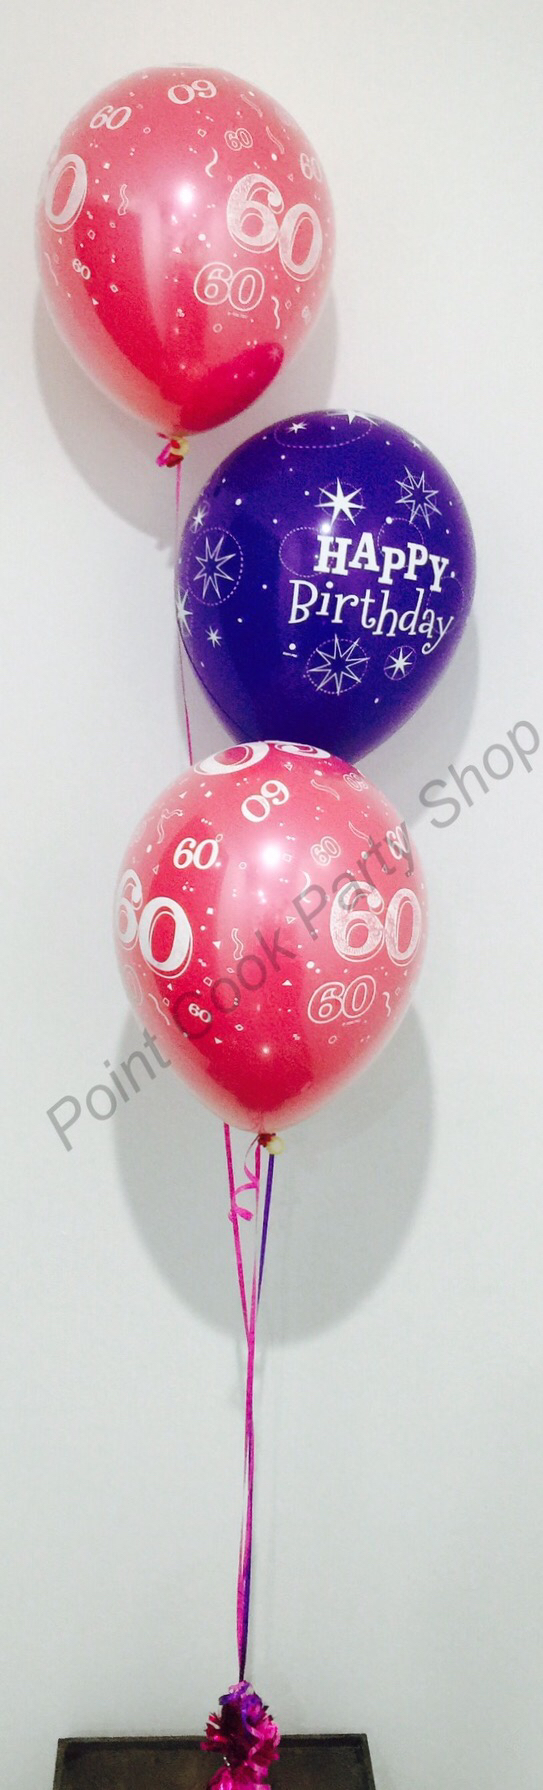 60th birthday balloon bouquet. Hot pink and purple balloons set up ...